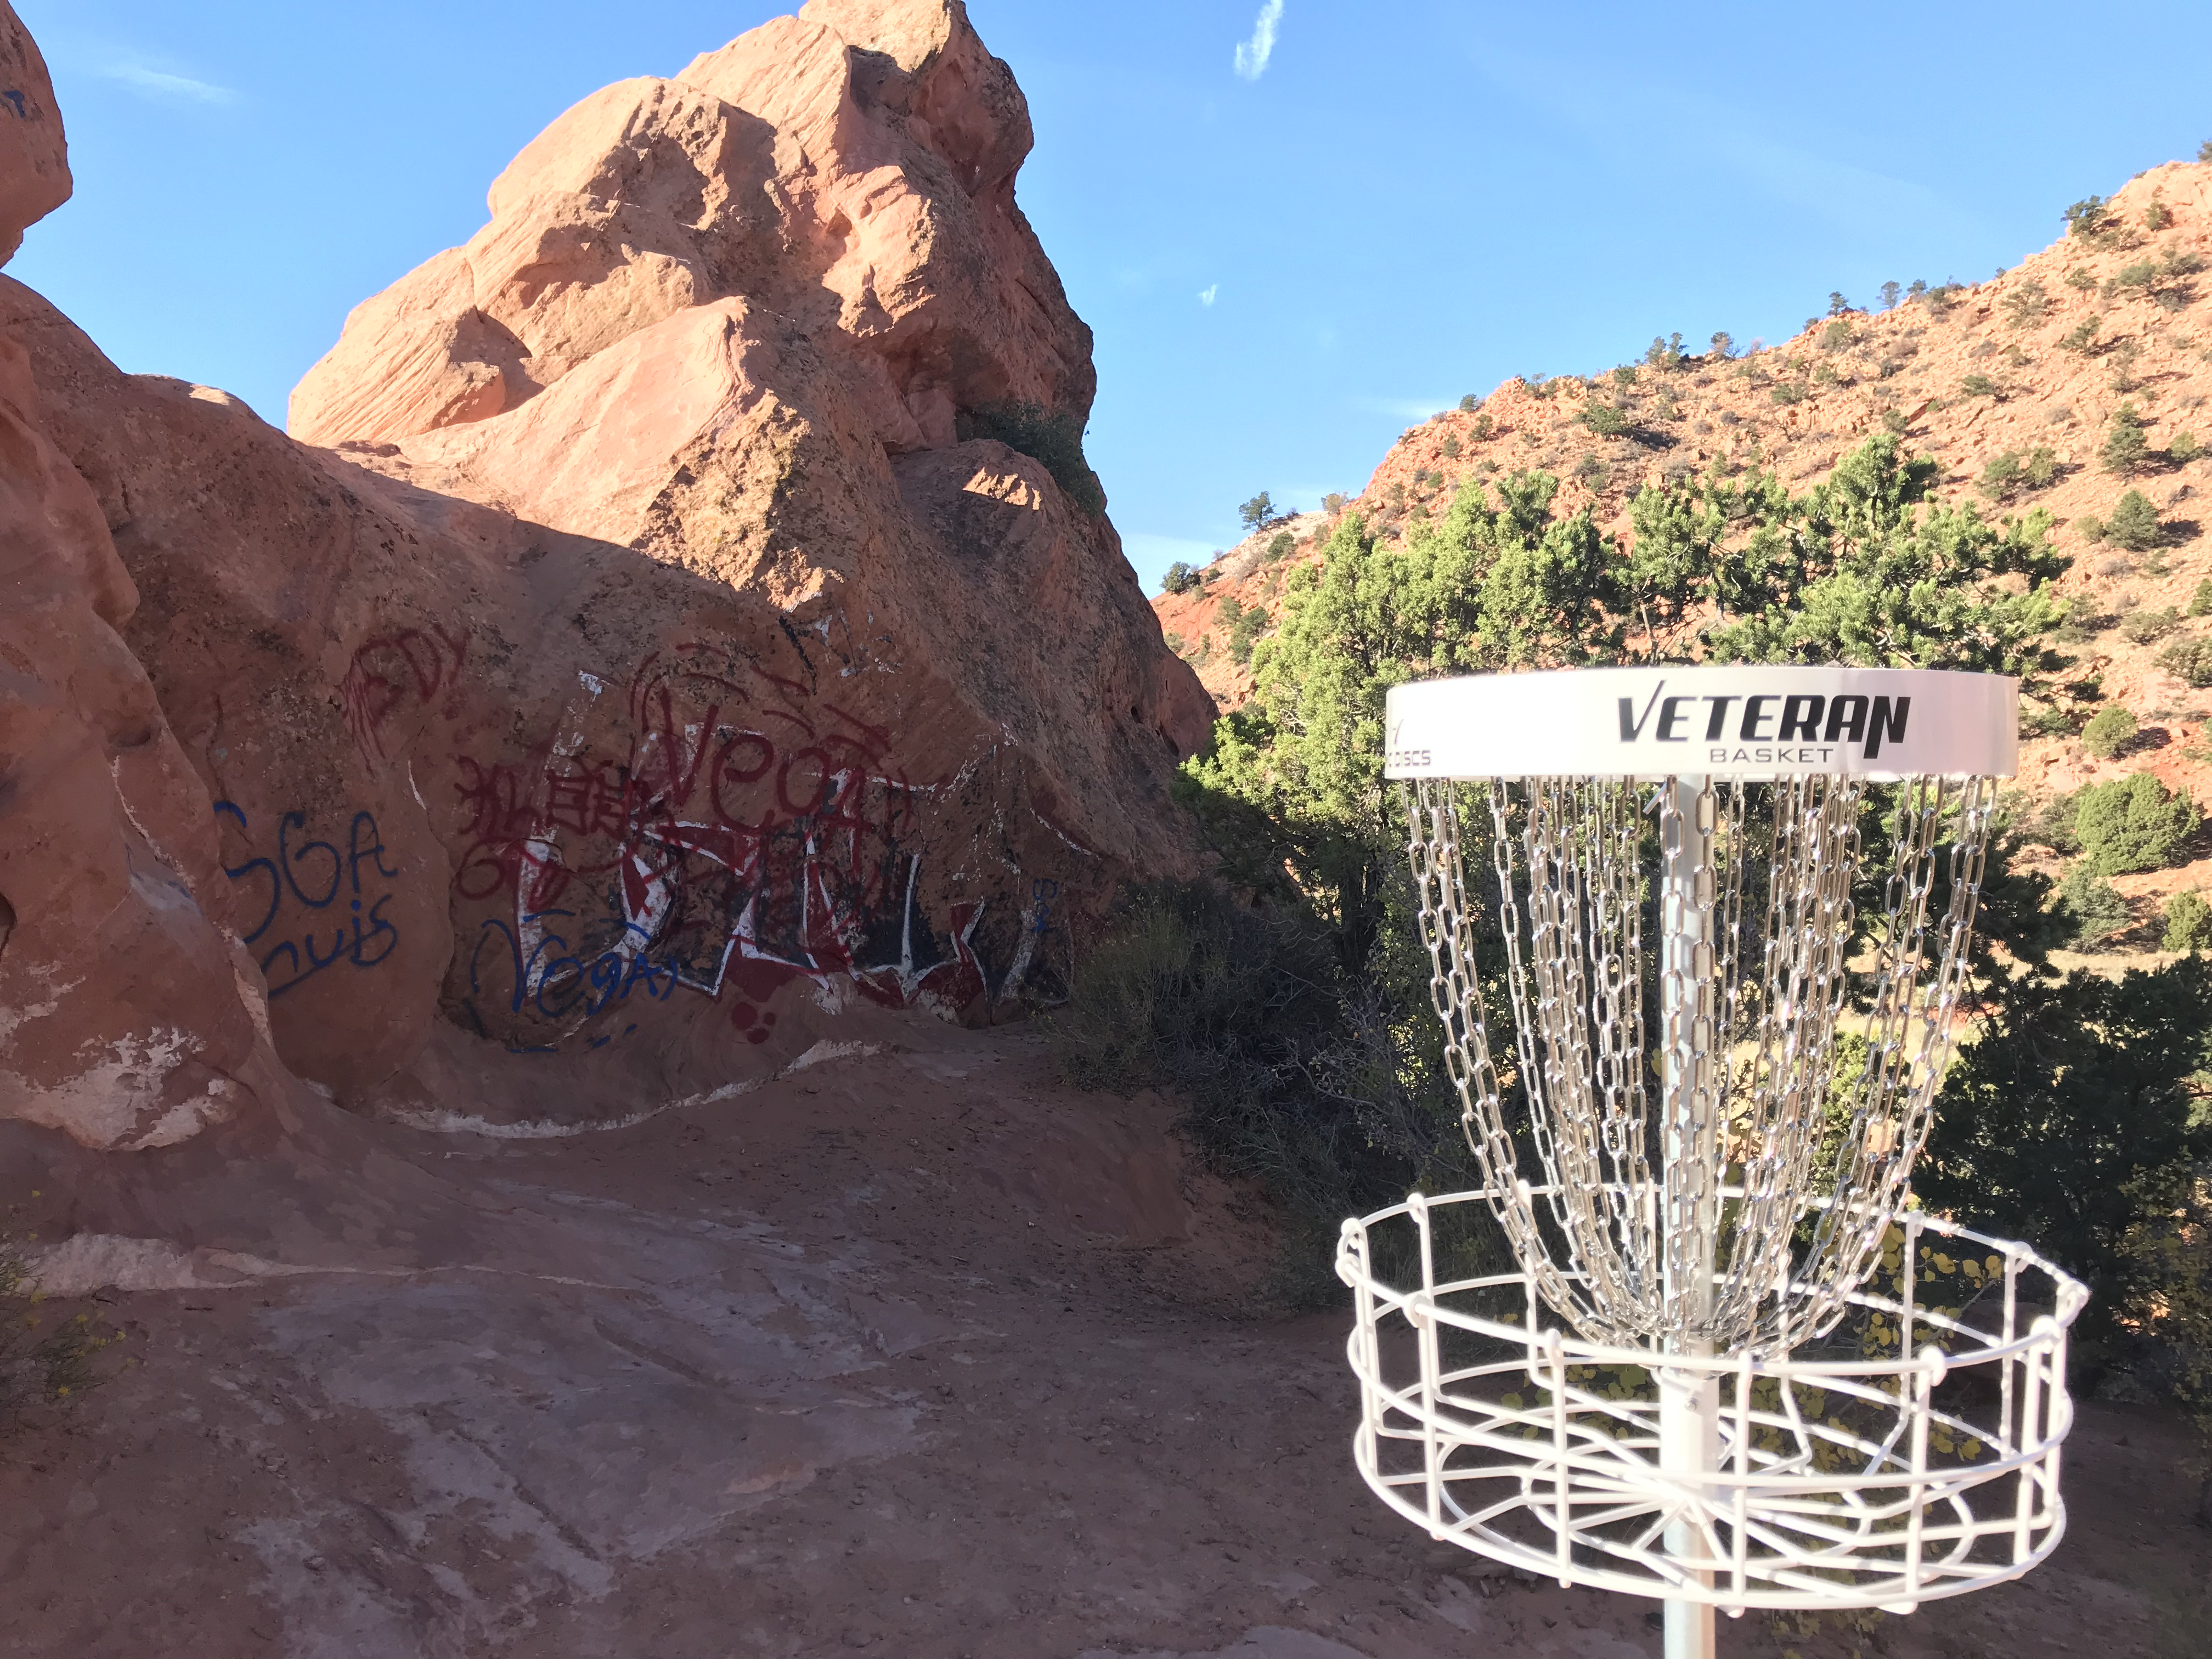 New Disc Golf Course at Thunderbird Gardens - SUU News